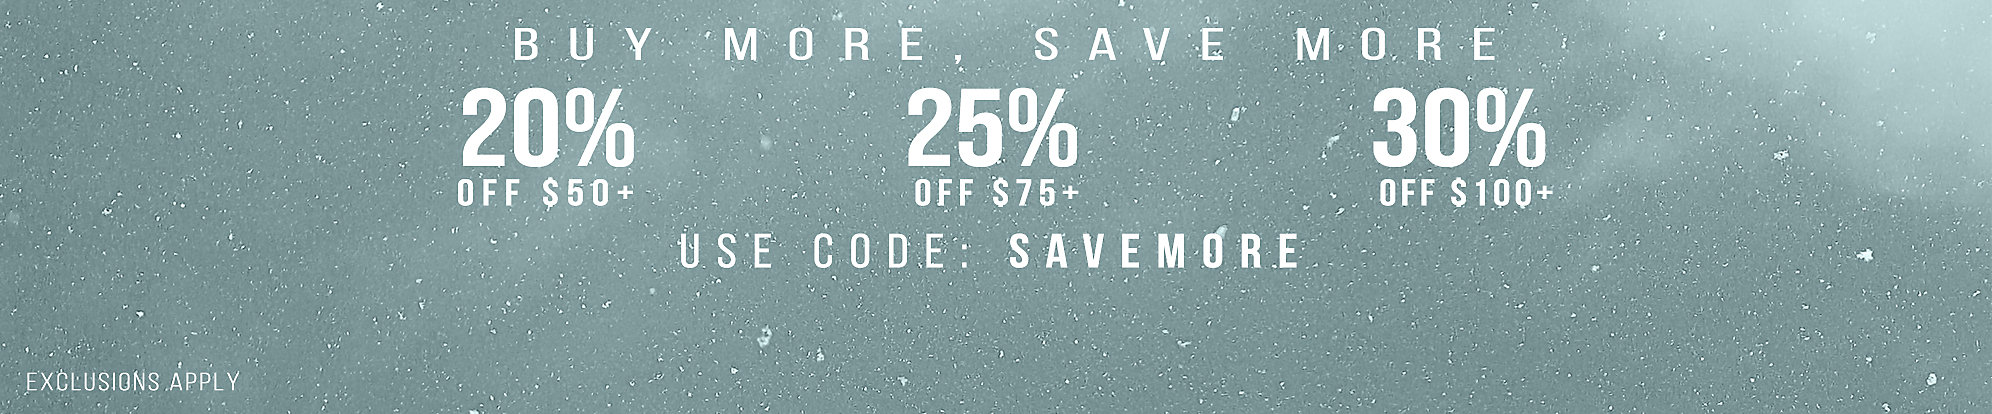 25% Off $50+, 25% Off $75+, 30% Off $100+ Use Code SAVEMORE